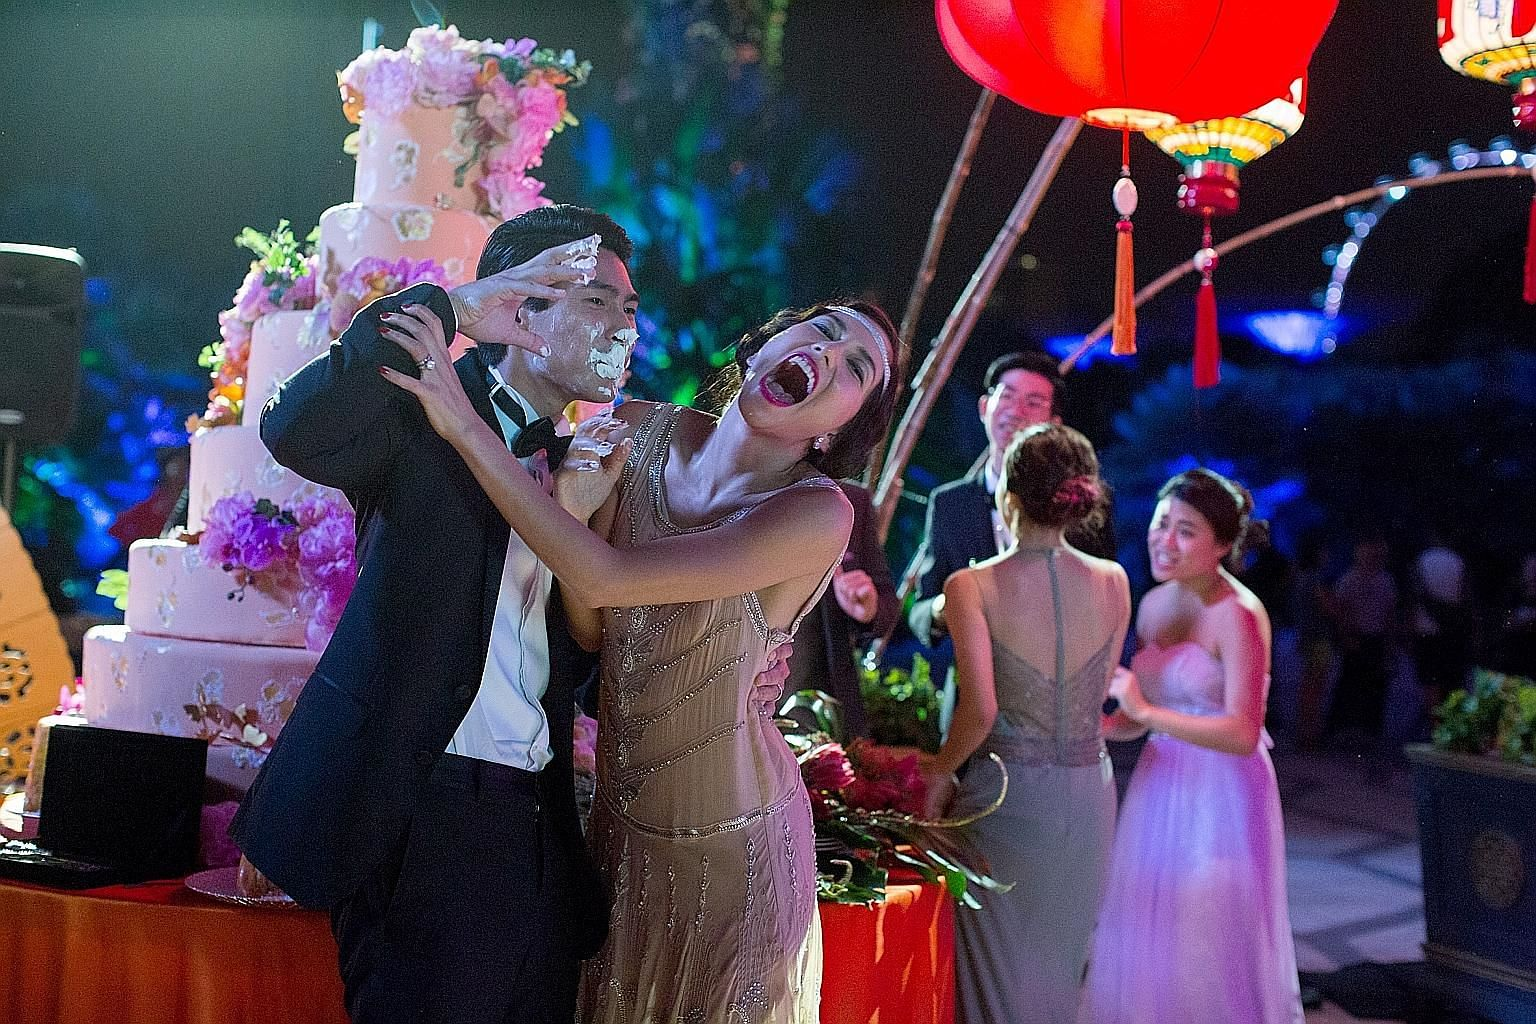 The movie Crazy Rich Asians puts income inequality and social mobility under the spotlight. The film has a happy ending, but it also raises the question of whether economic growth in Asia can be inclusive, the writer says.